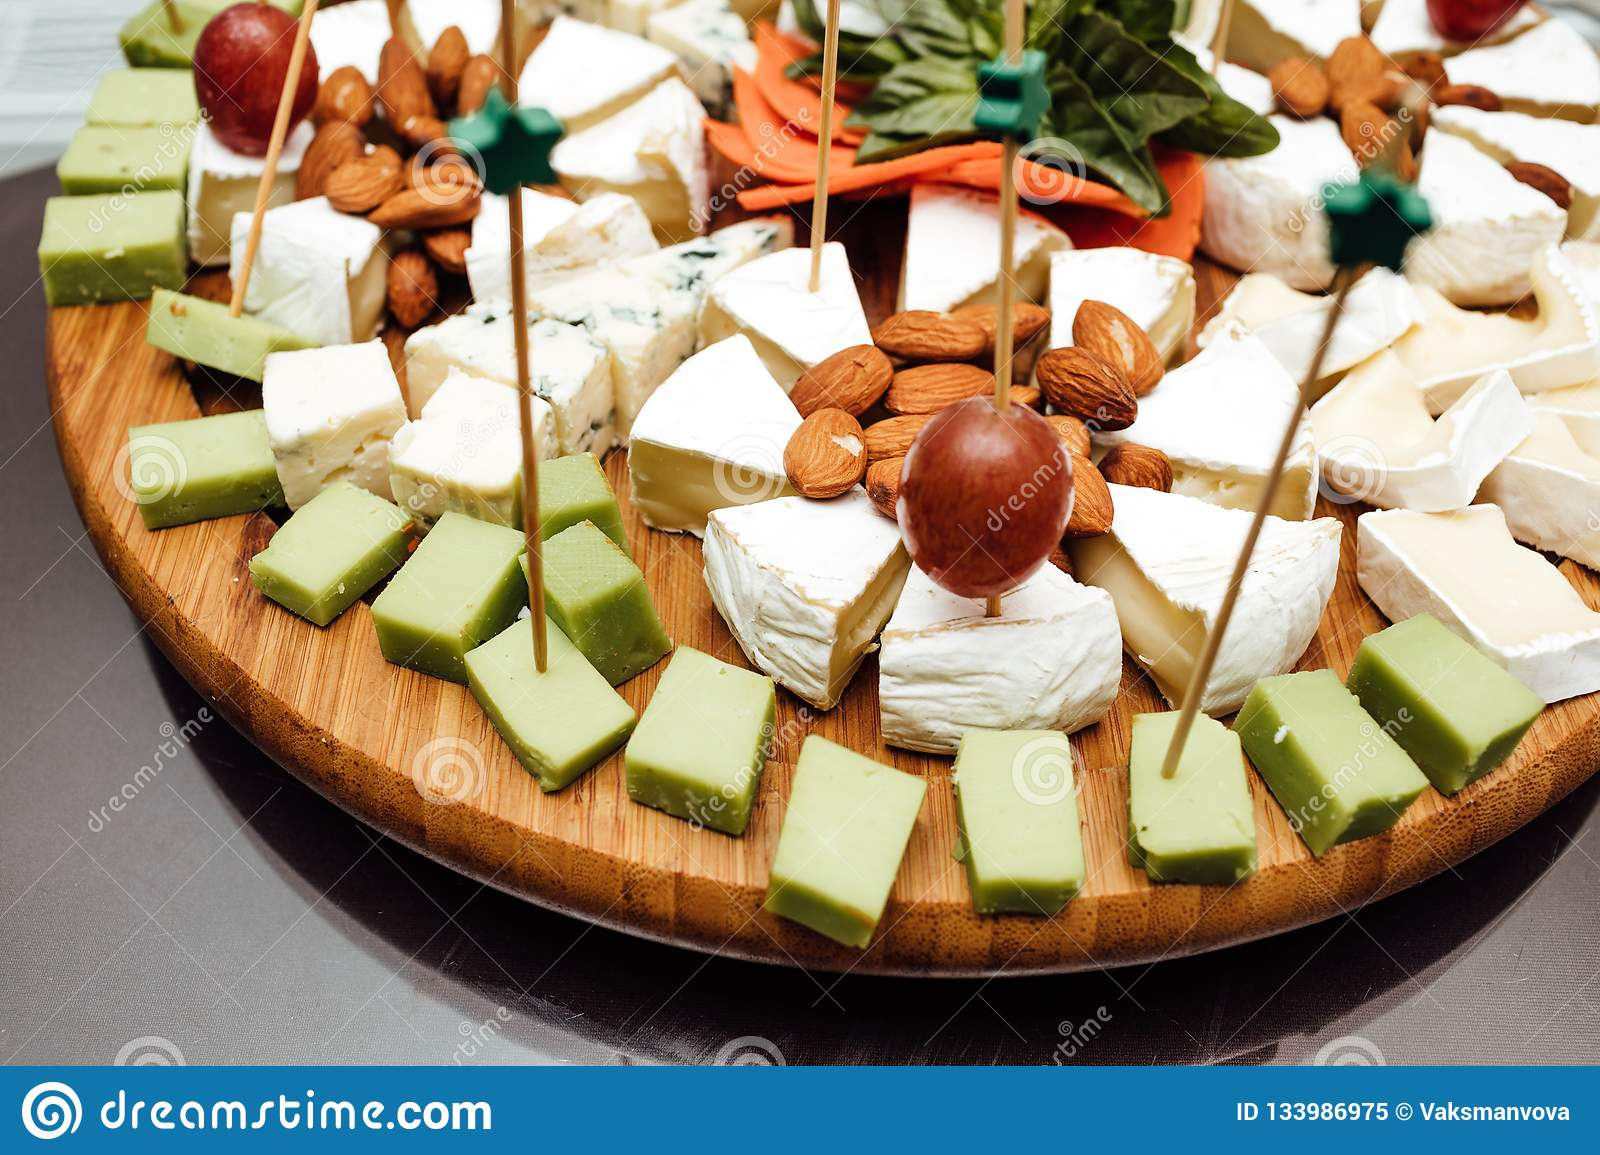 Tasting cheese dish . Delicious cheese on the table. Table setting at a luxury wedding reception.